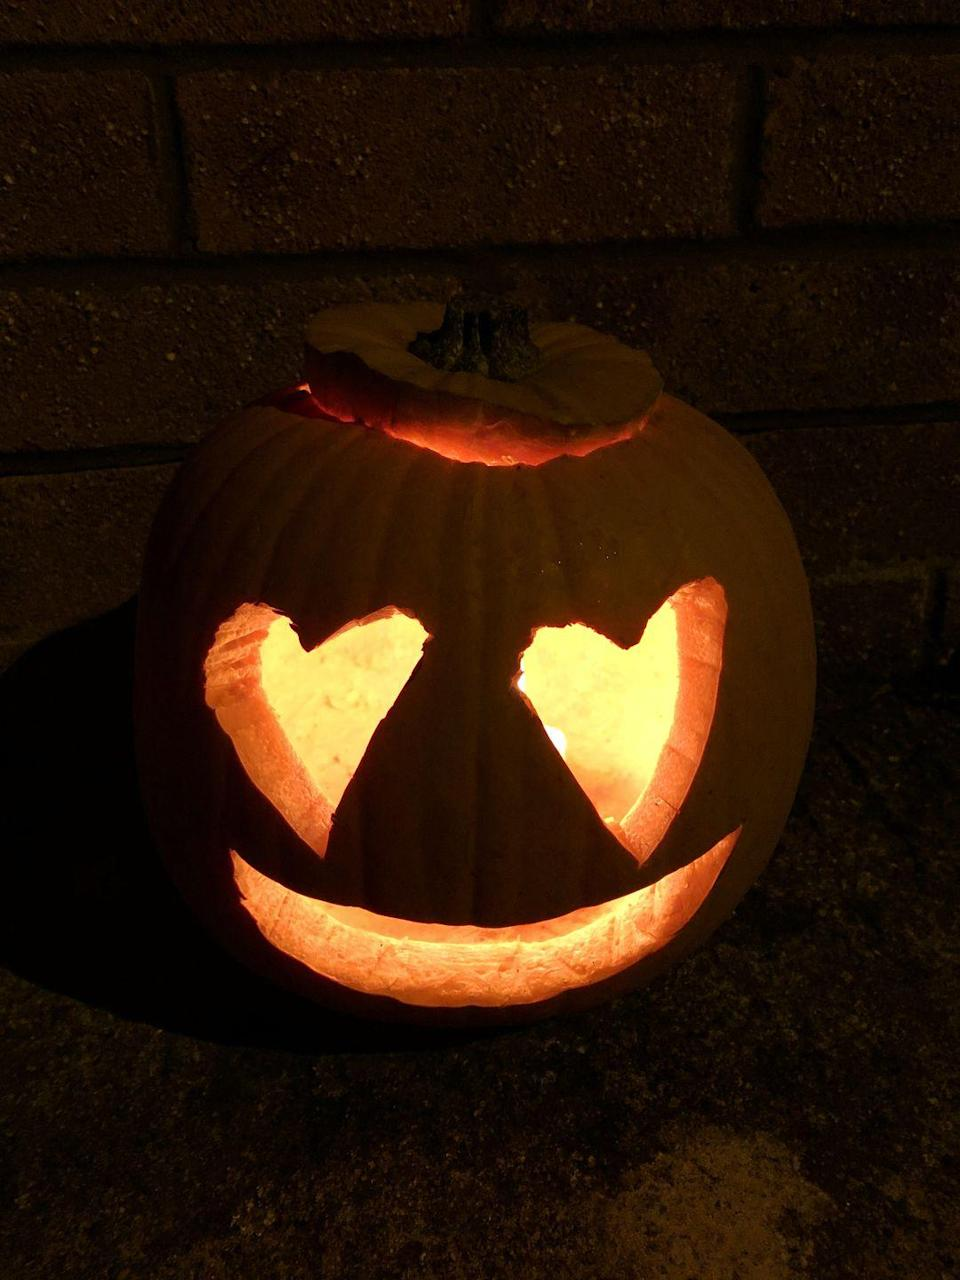 <p>Keep the carving simple with this popular emoji idea. The basic heart-shaped eyes and smile are easy to re-create.</p>